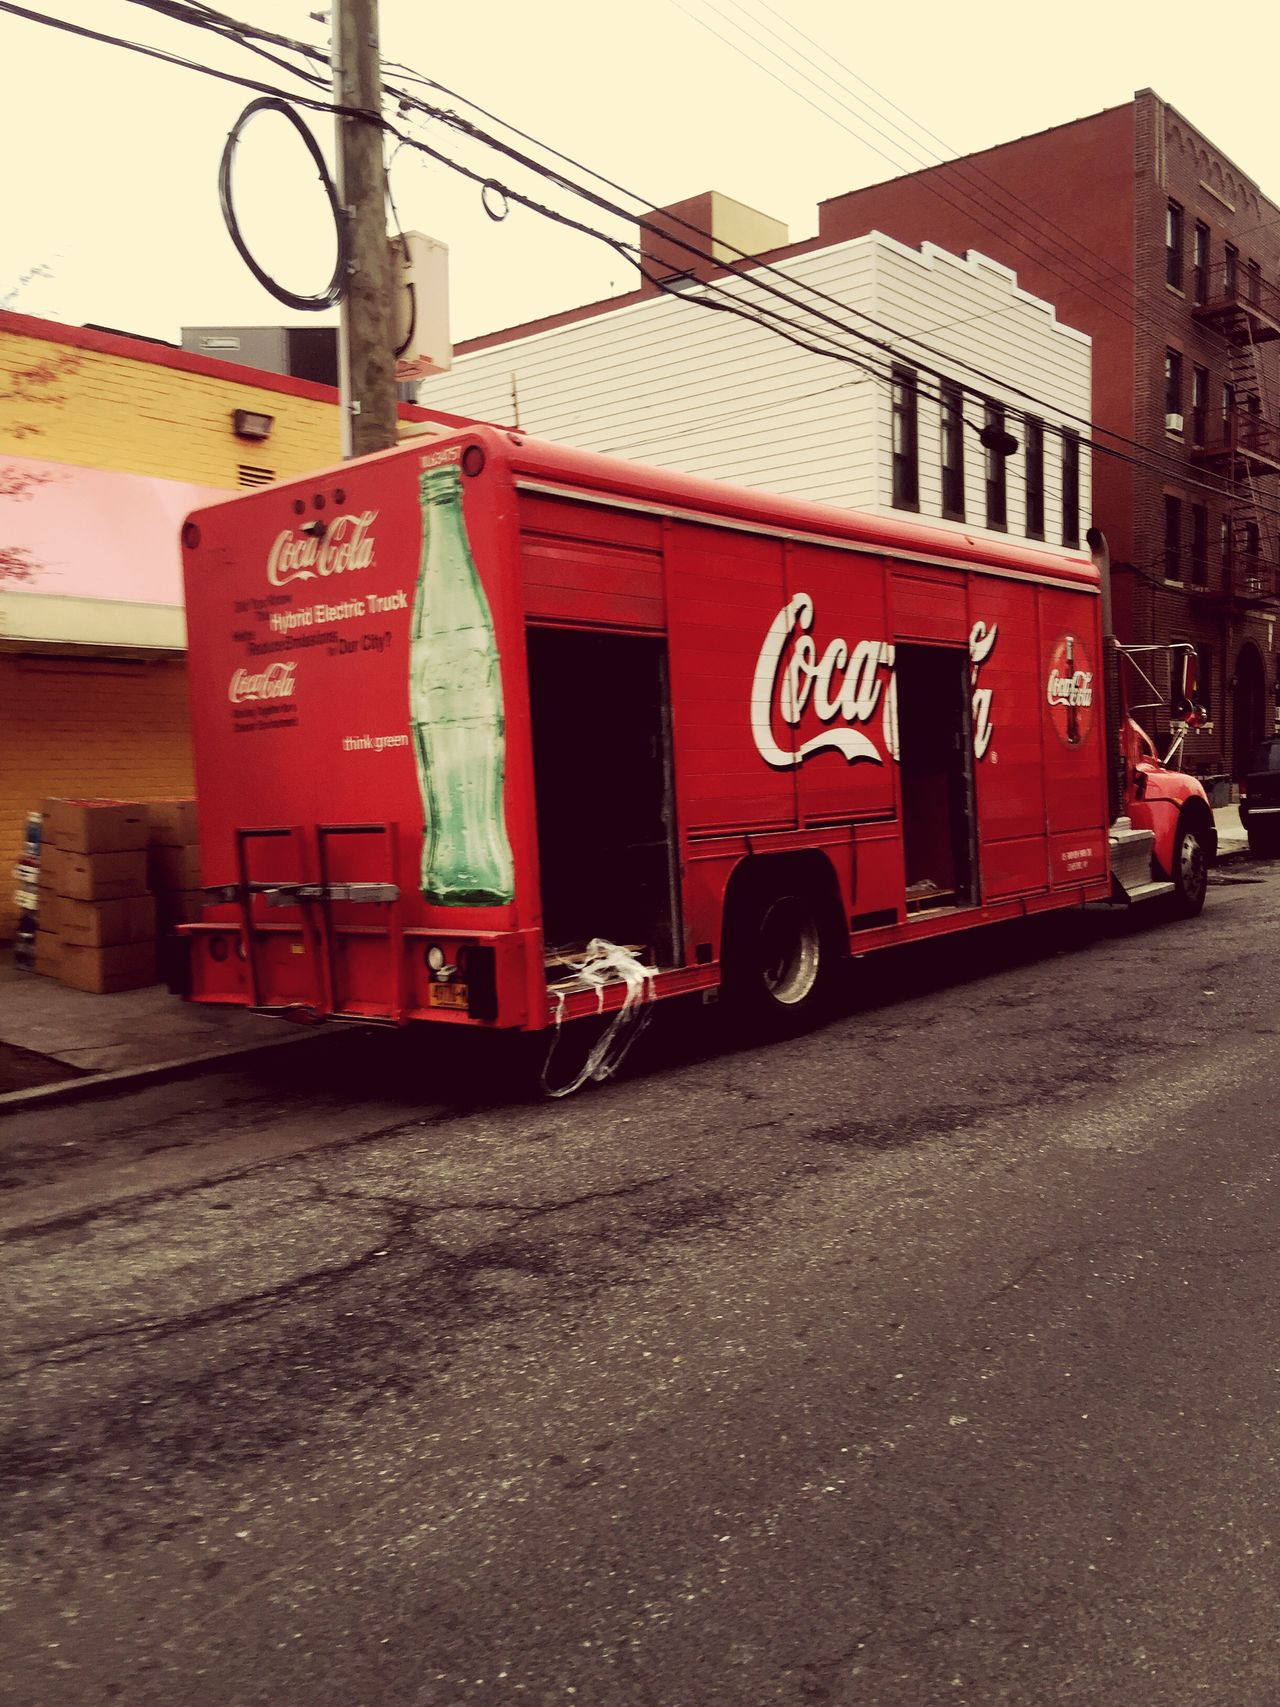 So original Coca-Cola truck